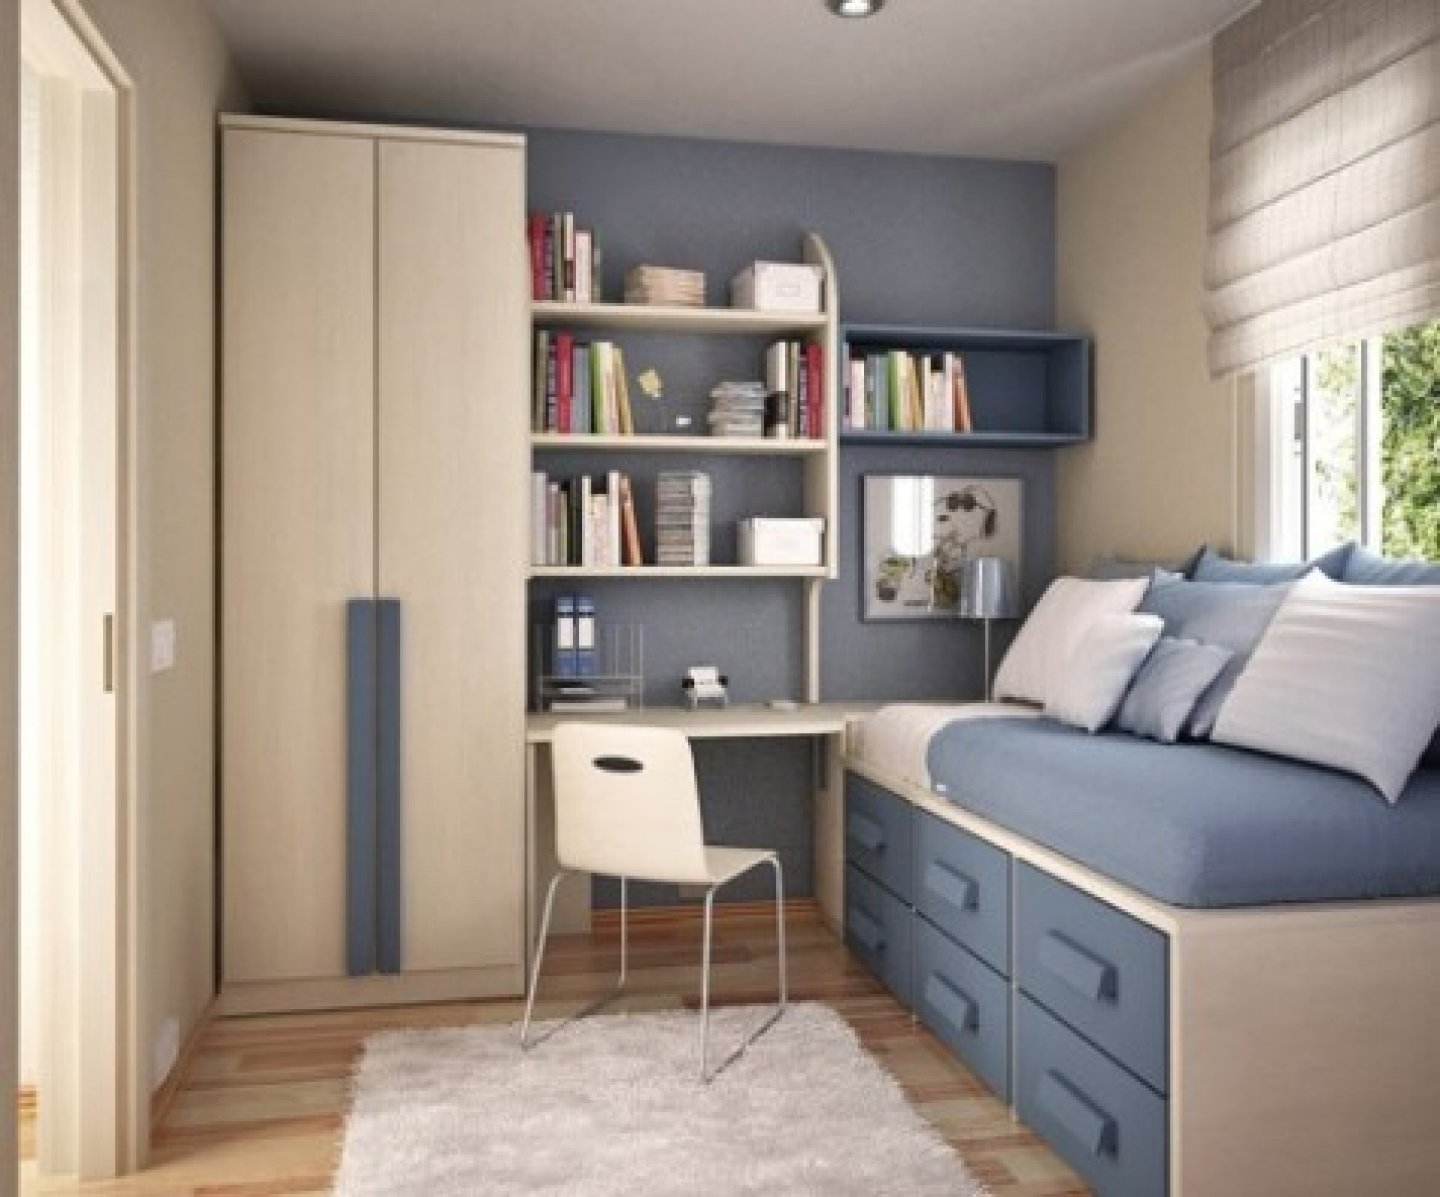 10 Beautiful Room Ideas For Small Rooms single bed ideas for small rooms best designing best beds for small 2020